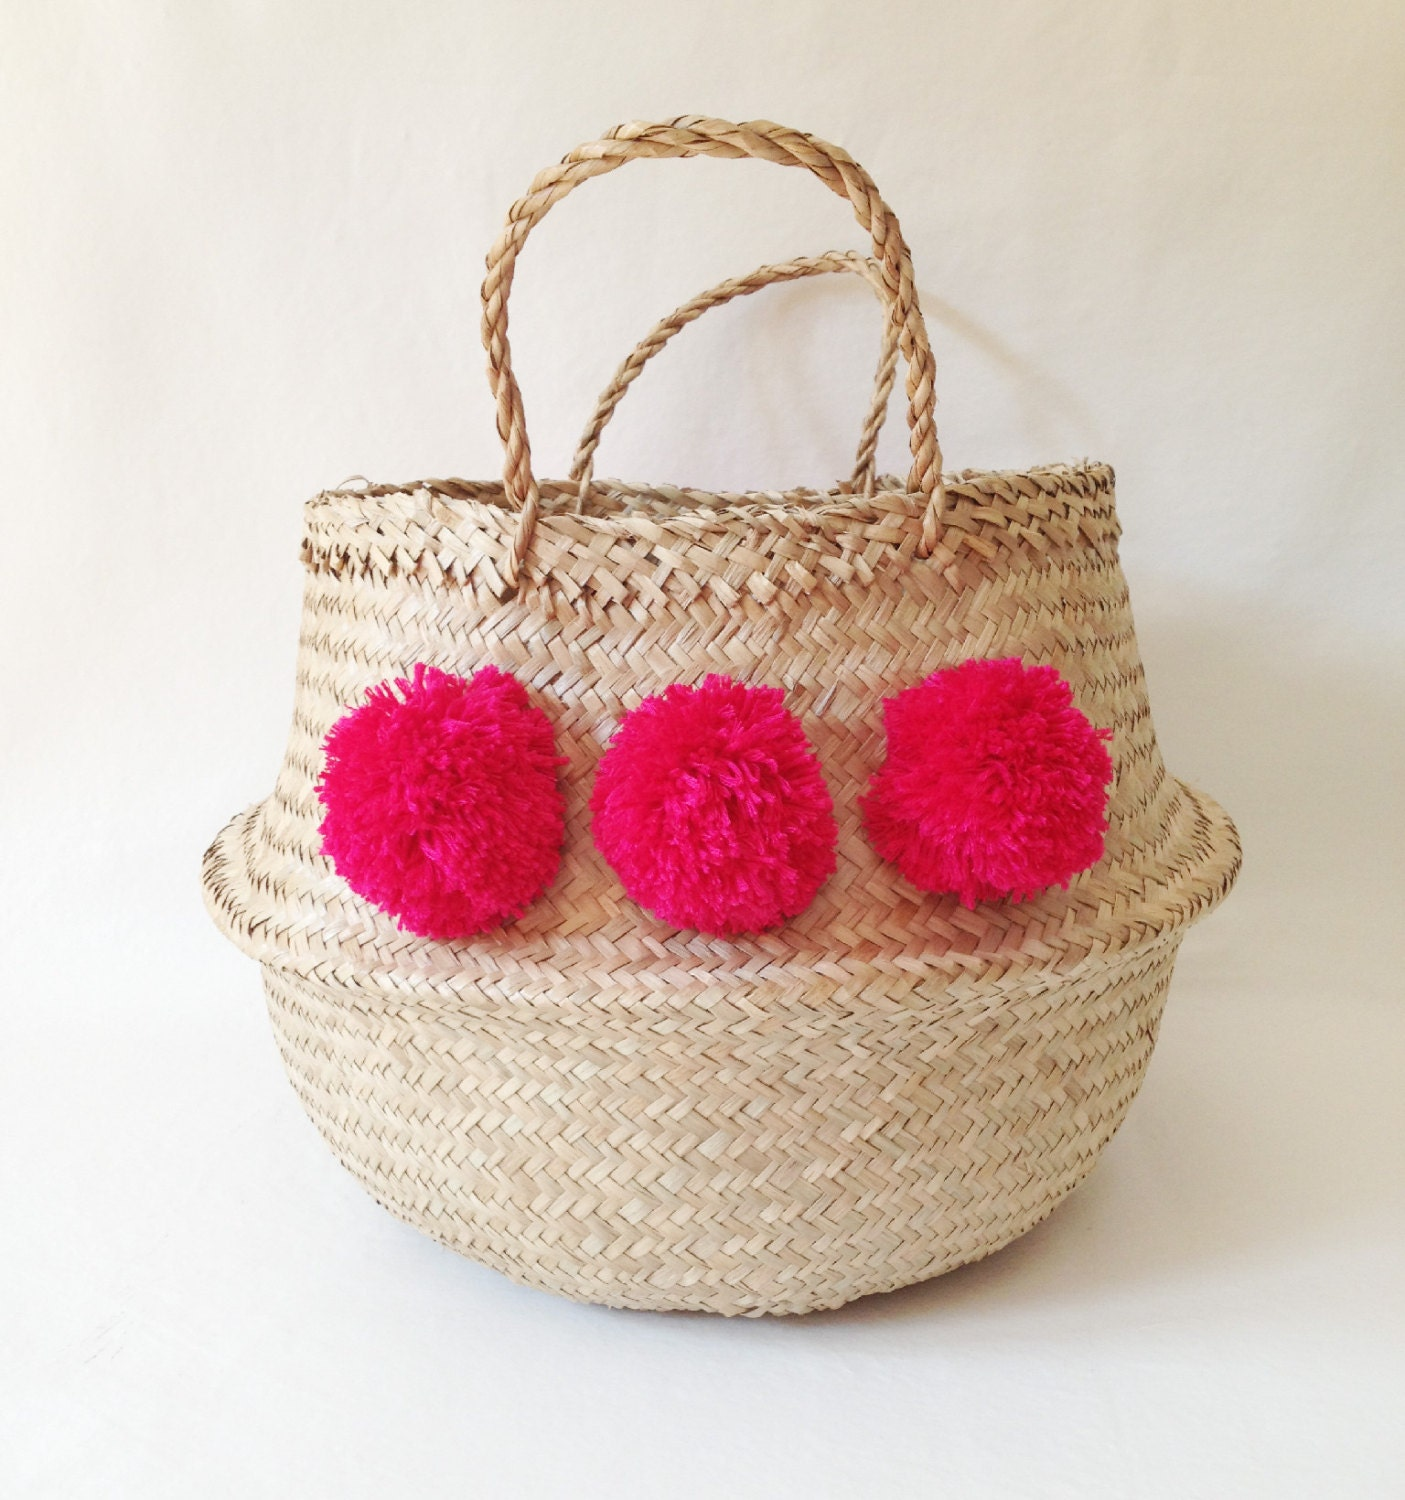 pom pom sea grass belly basket fuschia pink panier boule. Black Bedroom Furniture Sets. Home Design Ideas